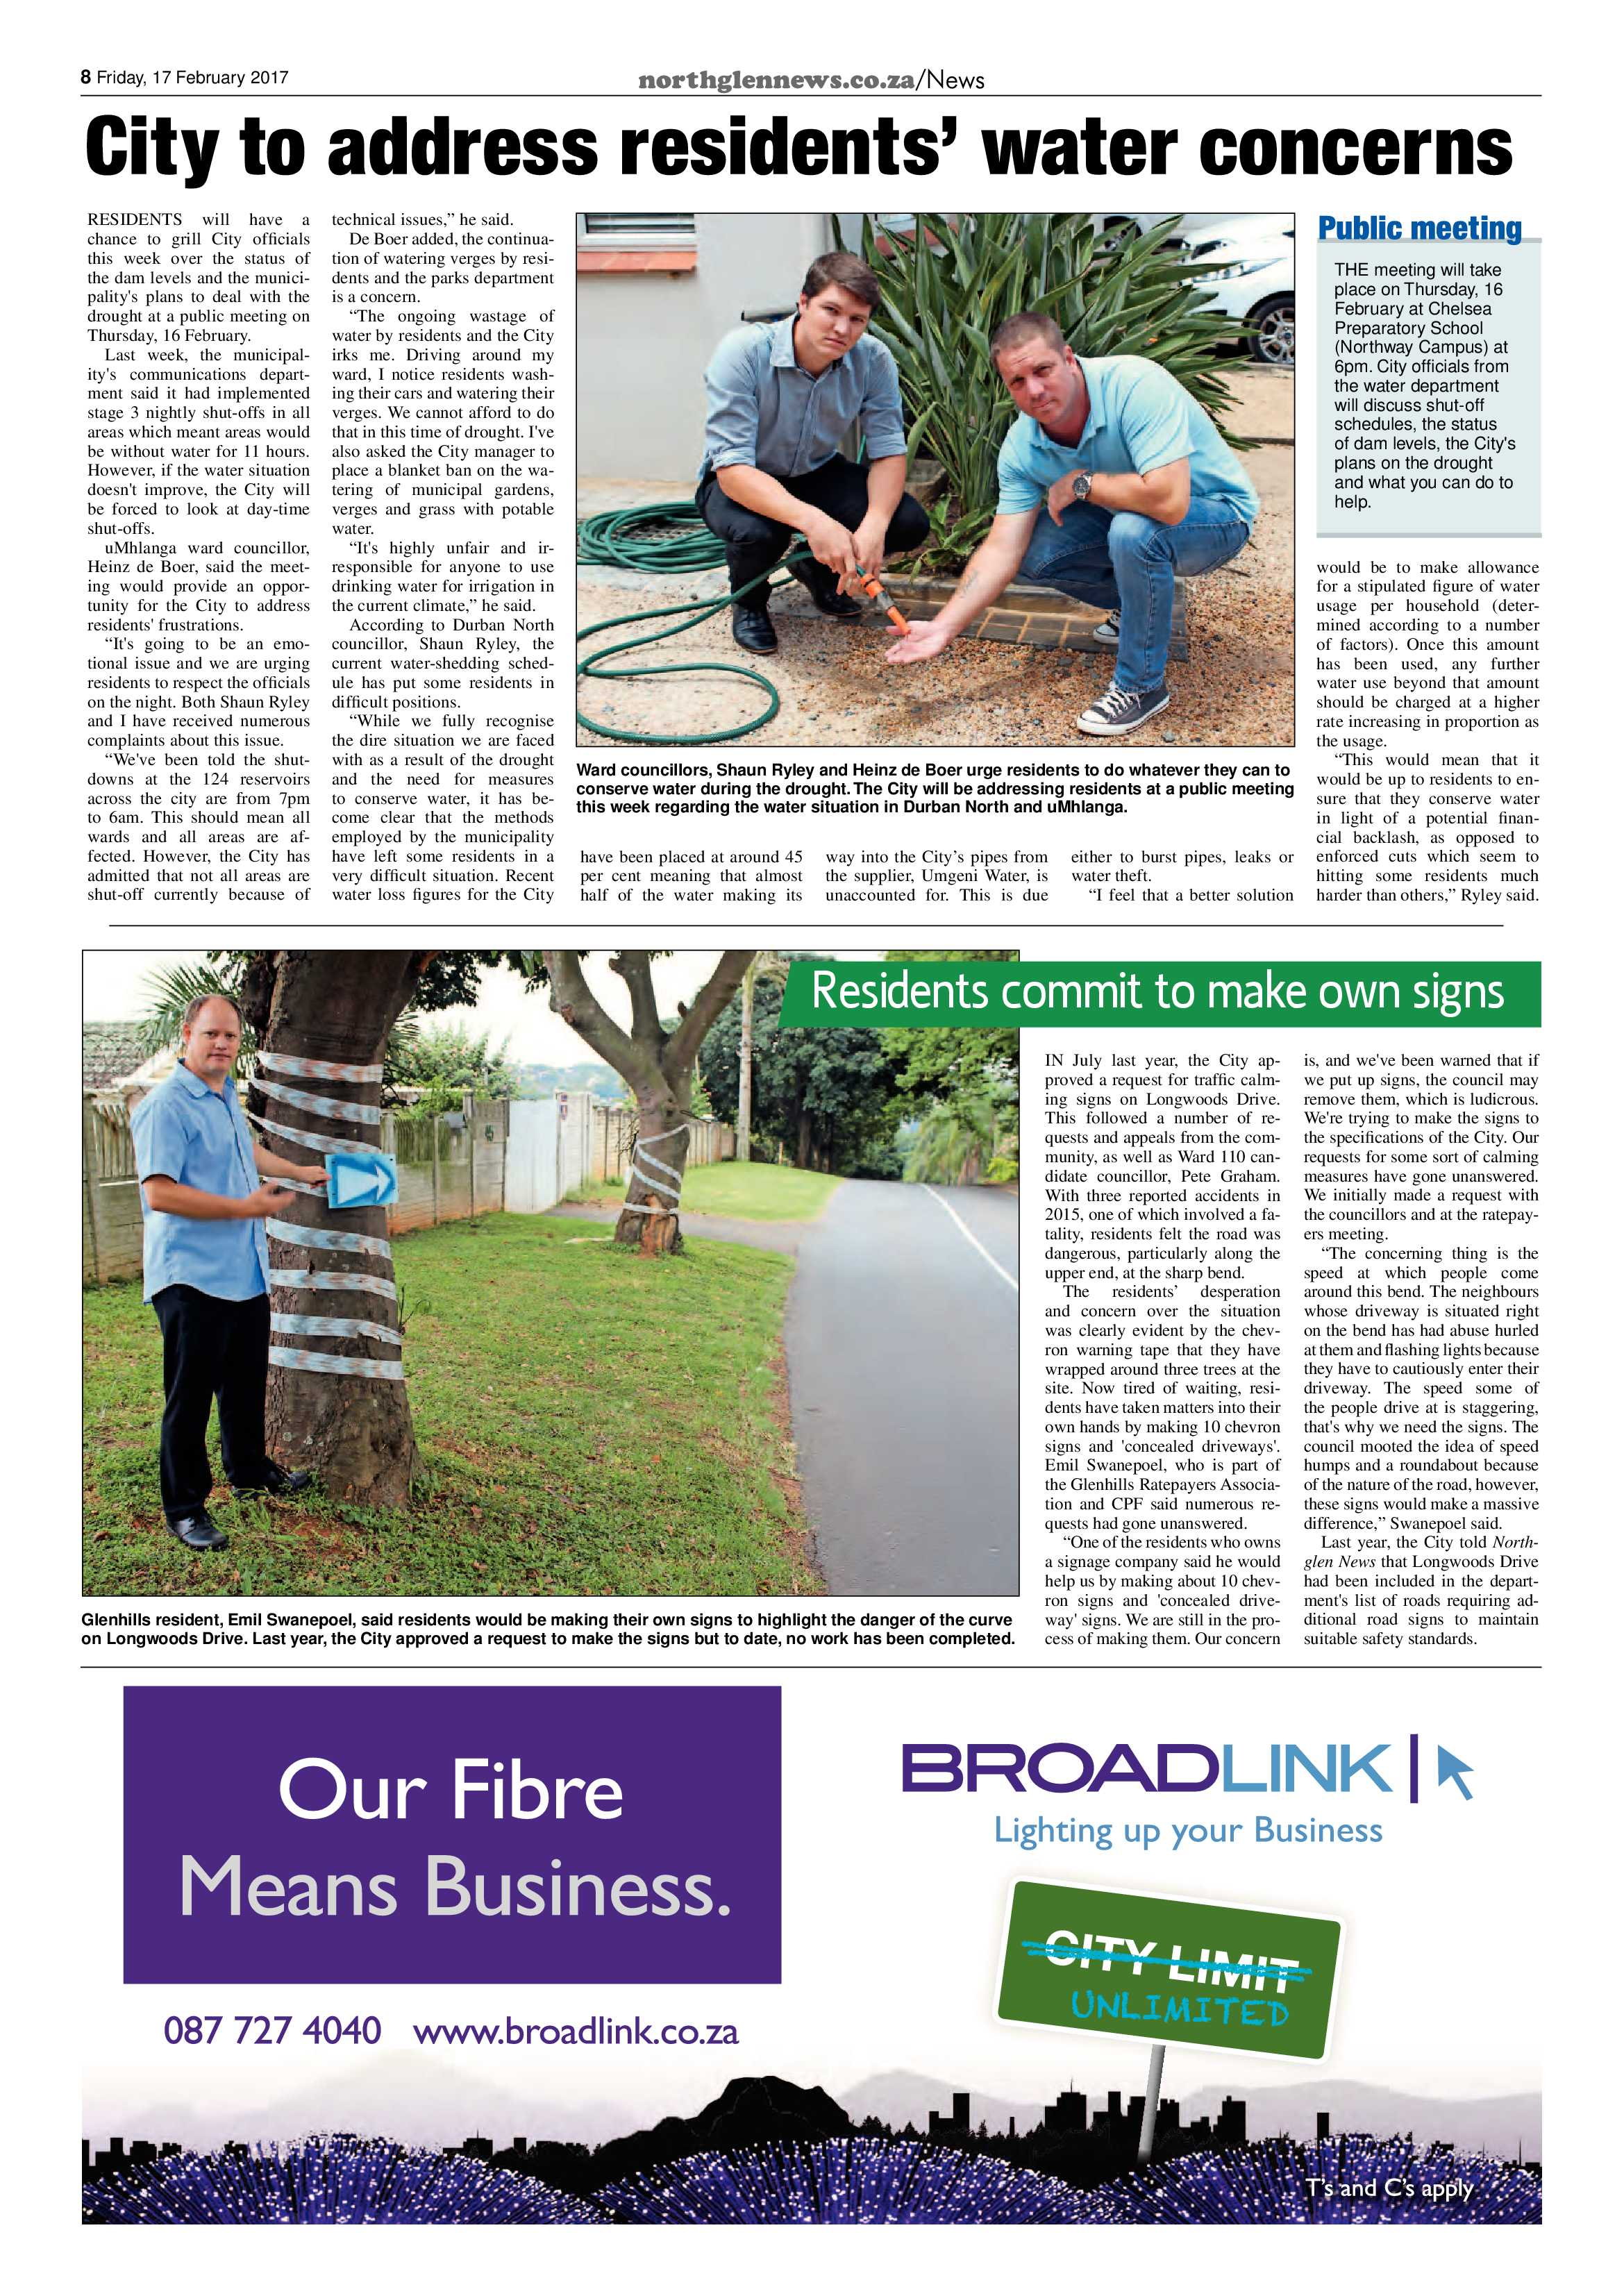 northglen-news-17-february-2017-epapers-page-8